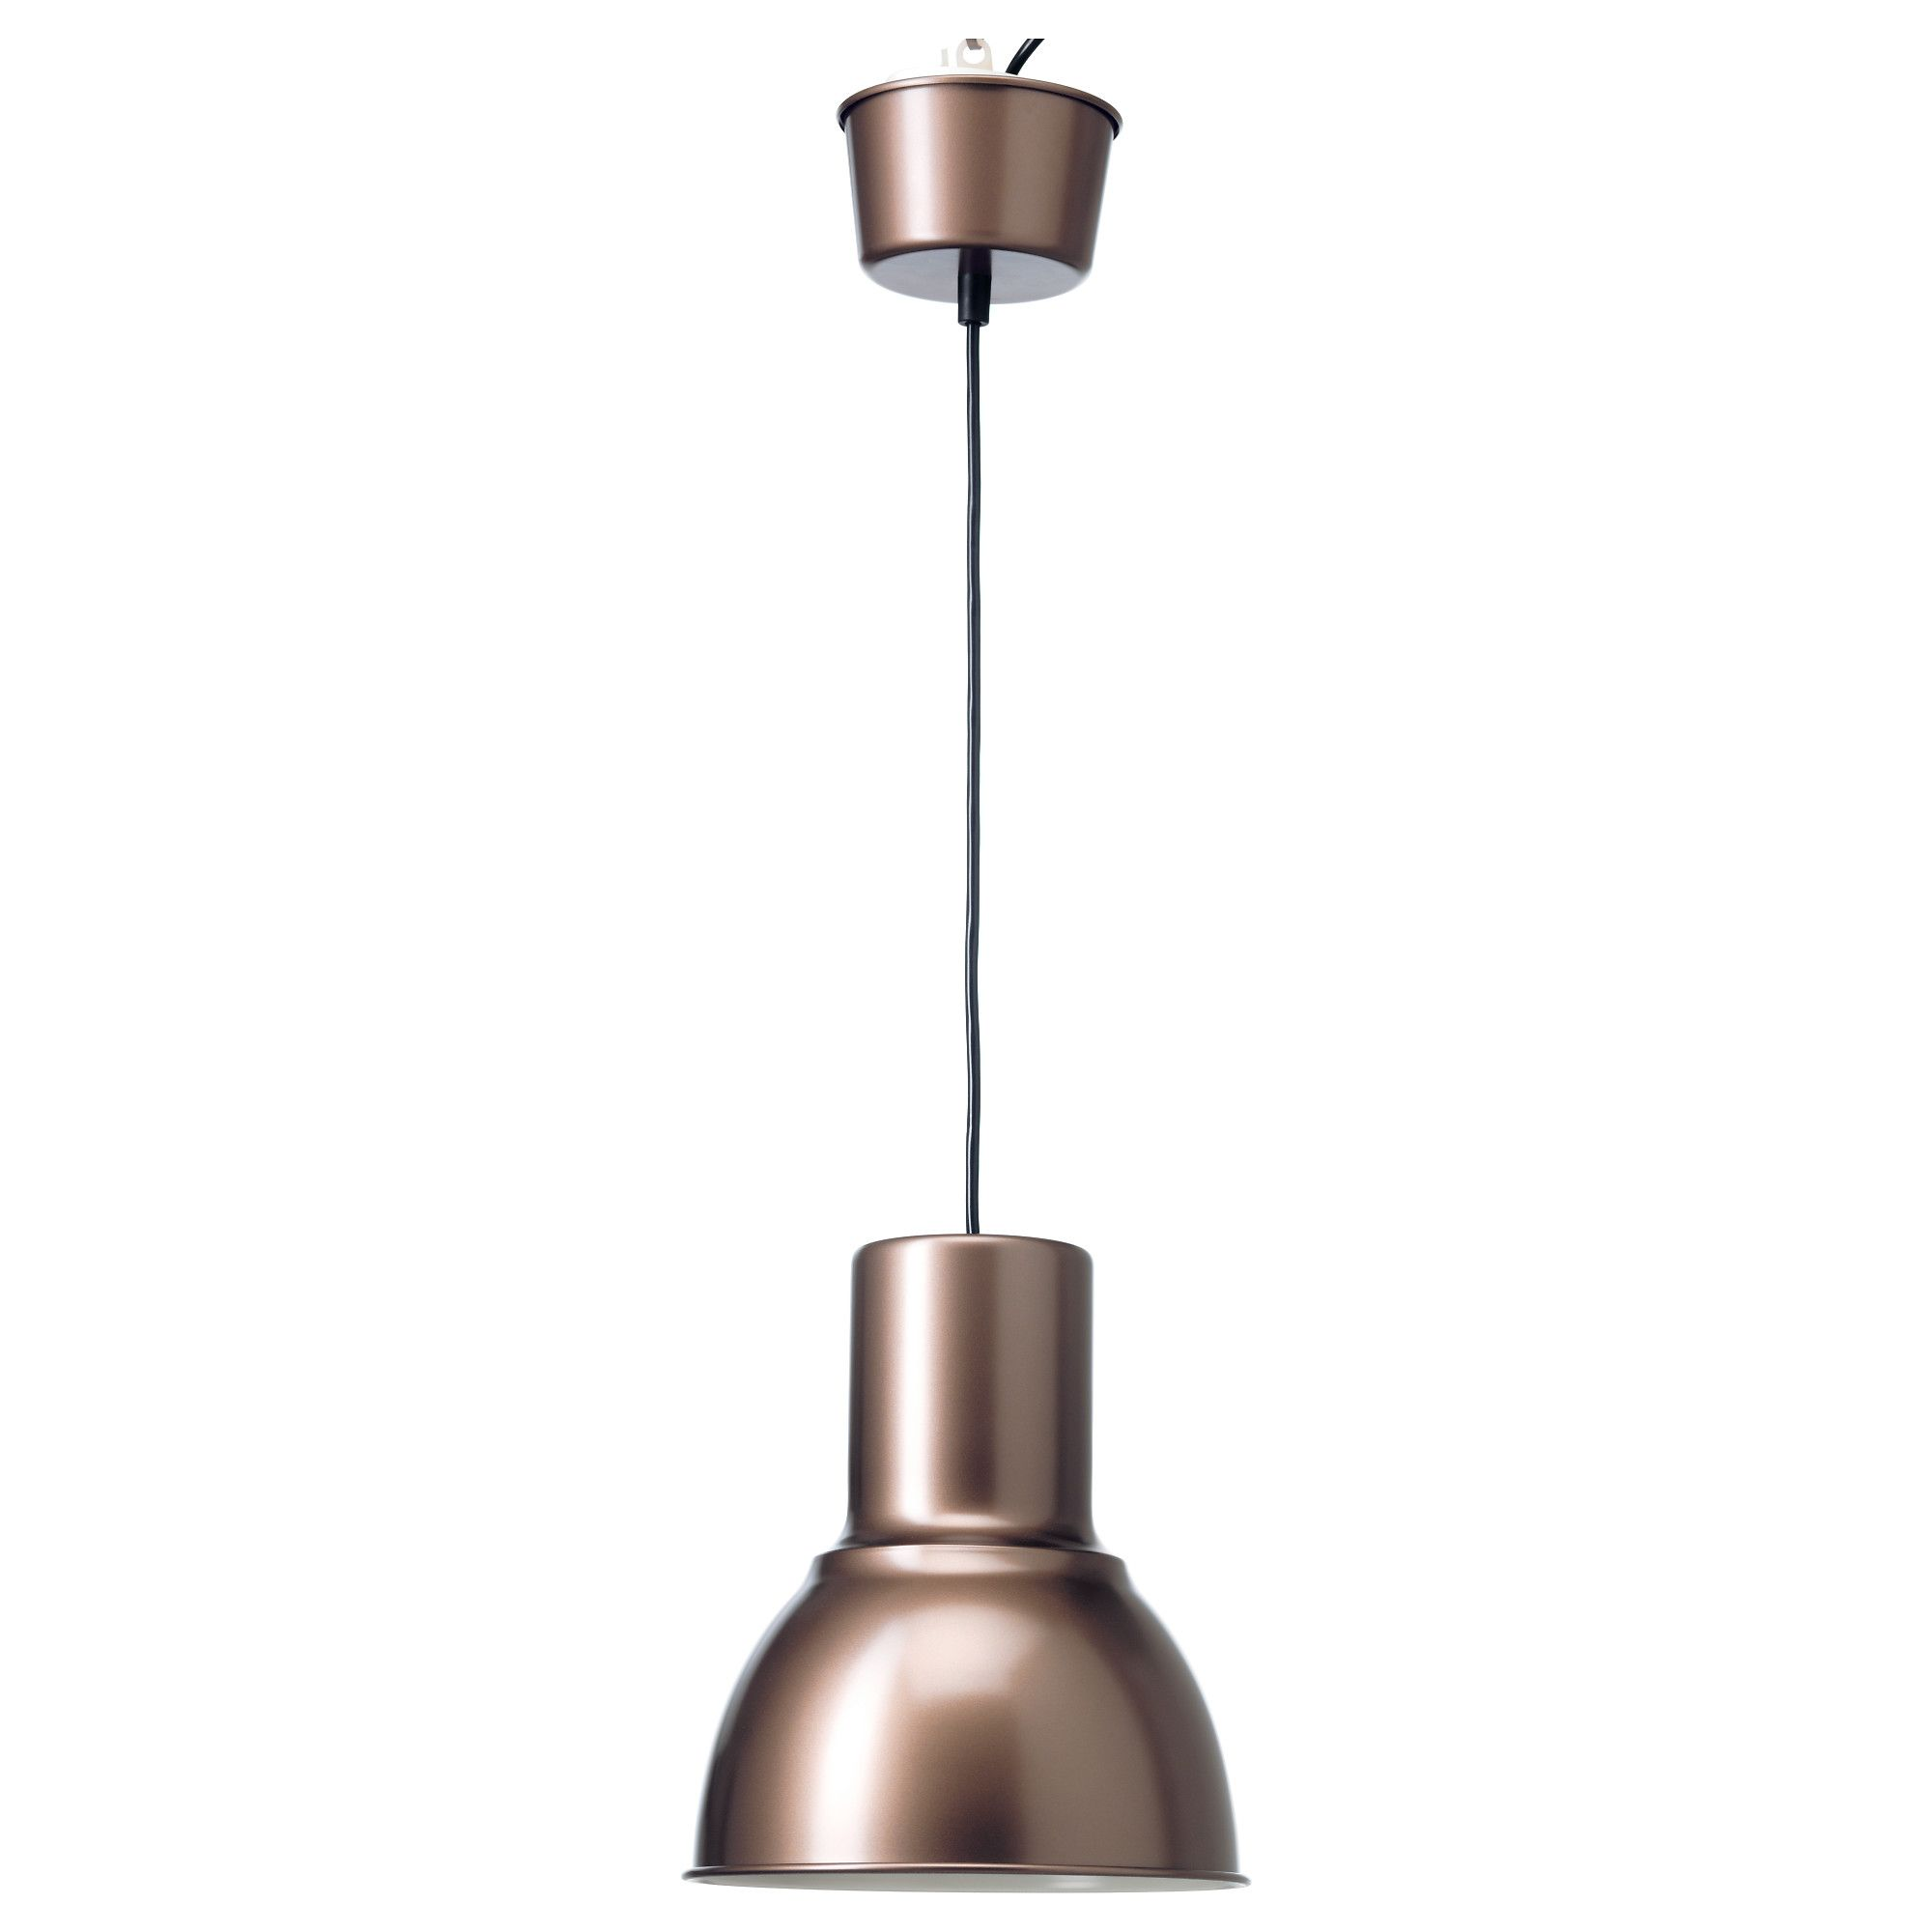 IKEA HEKTAR Pendant lamp This lamp gives a pleasant